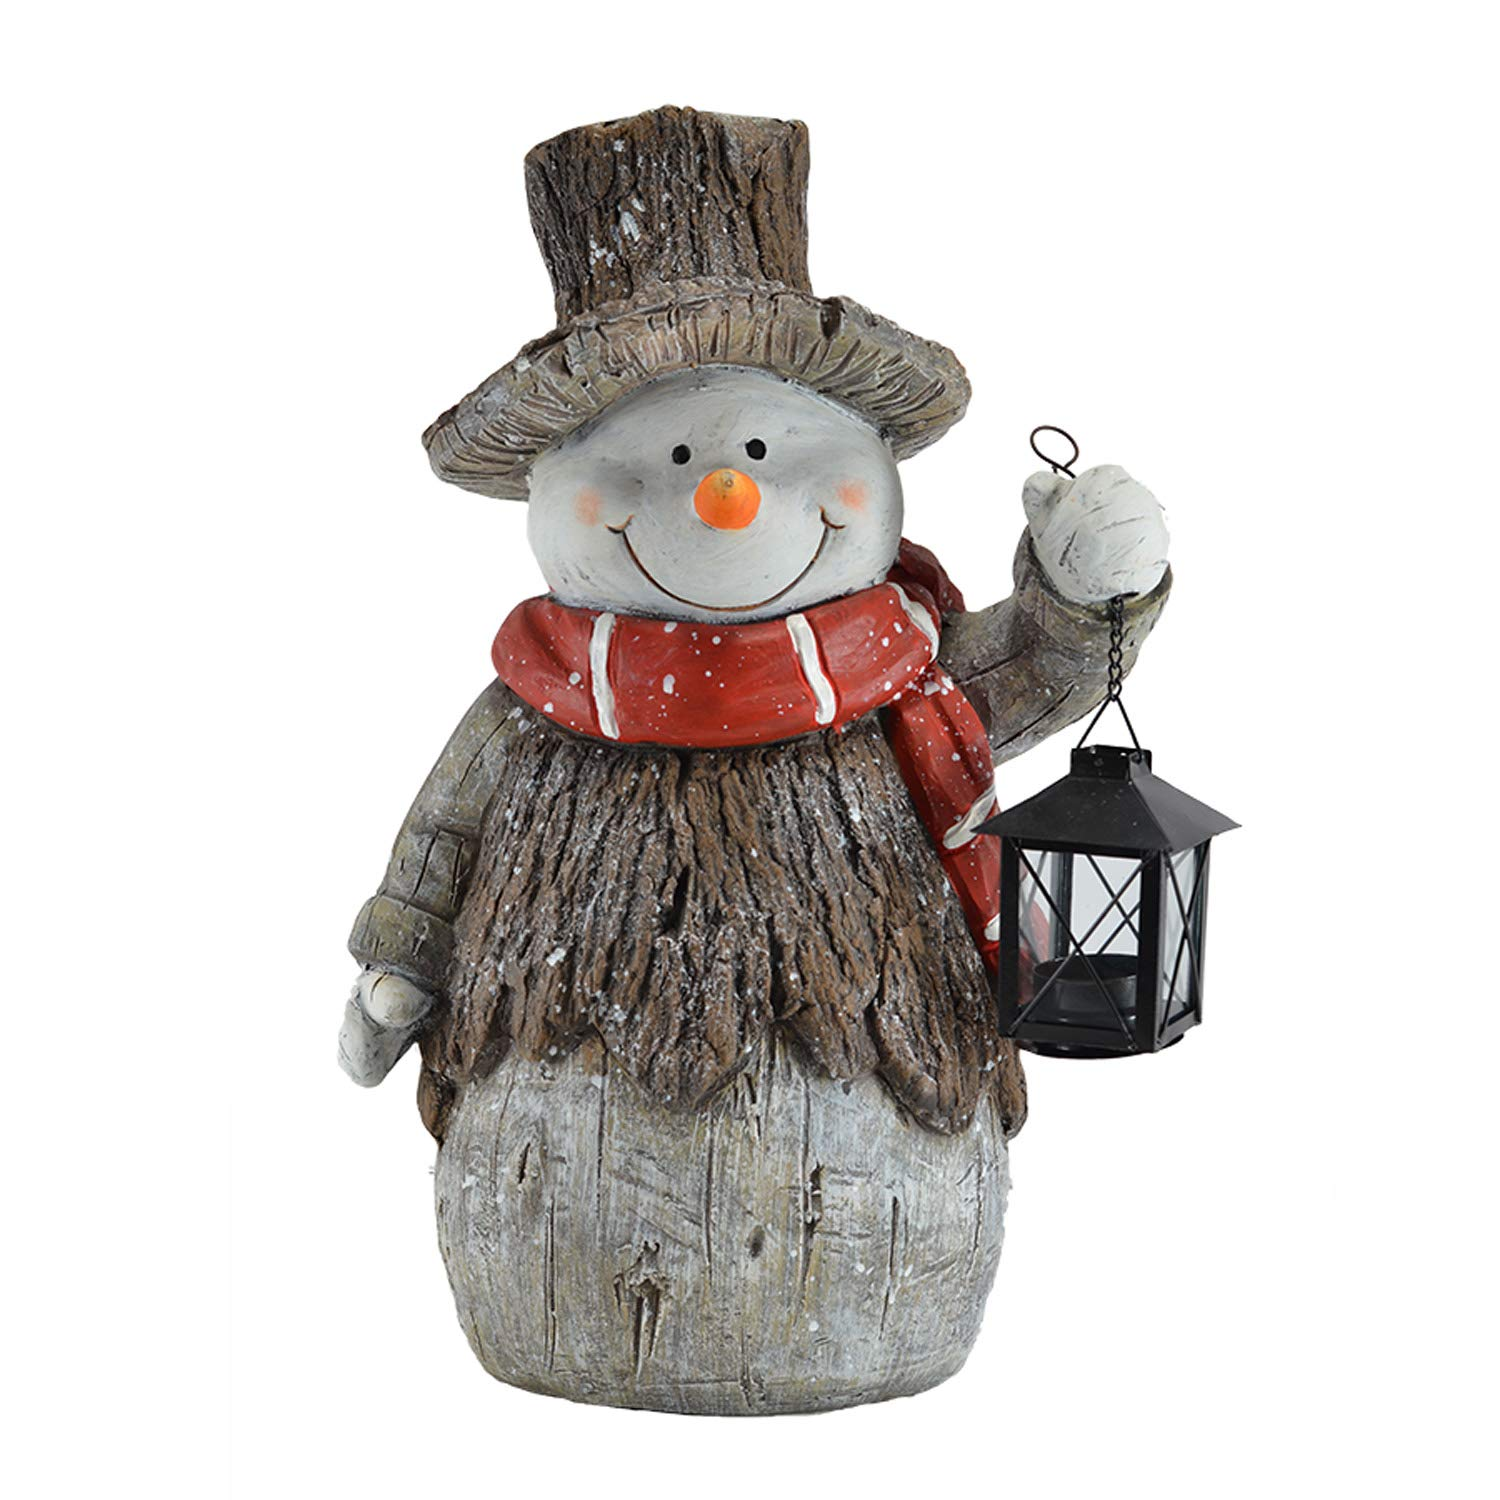 Image of Door Greeter Snowman Figure Statue with LED Light Up Lantern